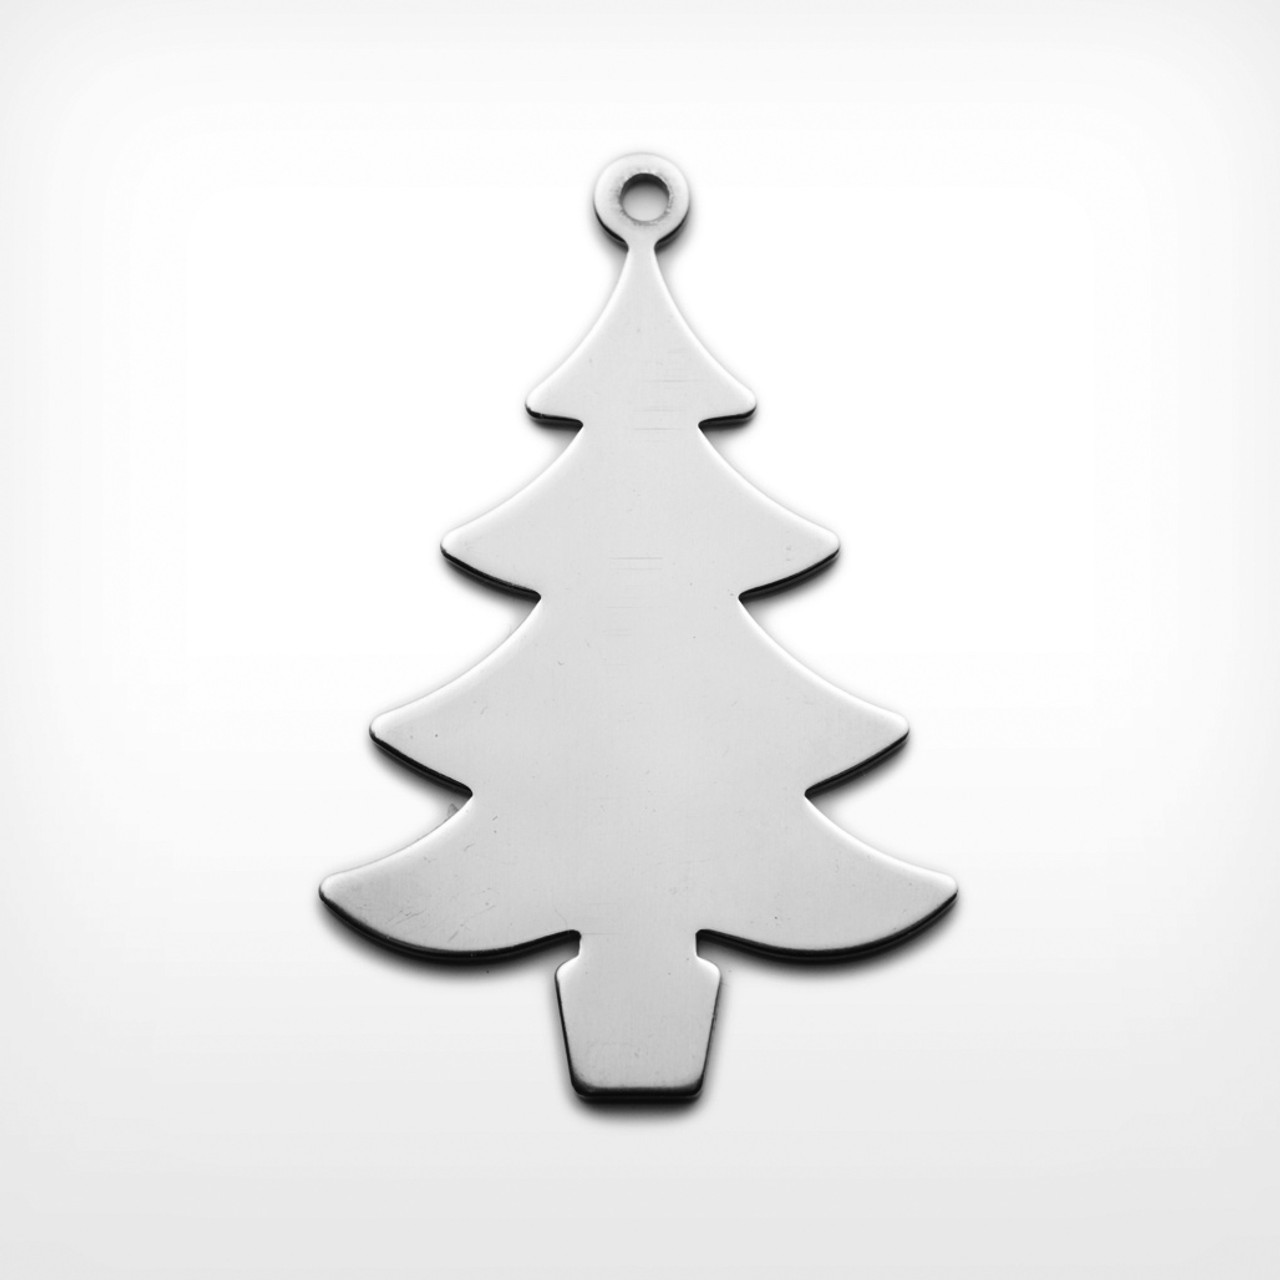 Aluminium Christmas Tree, with lug - Pack of 10 (441-AL)